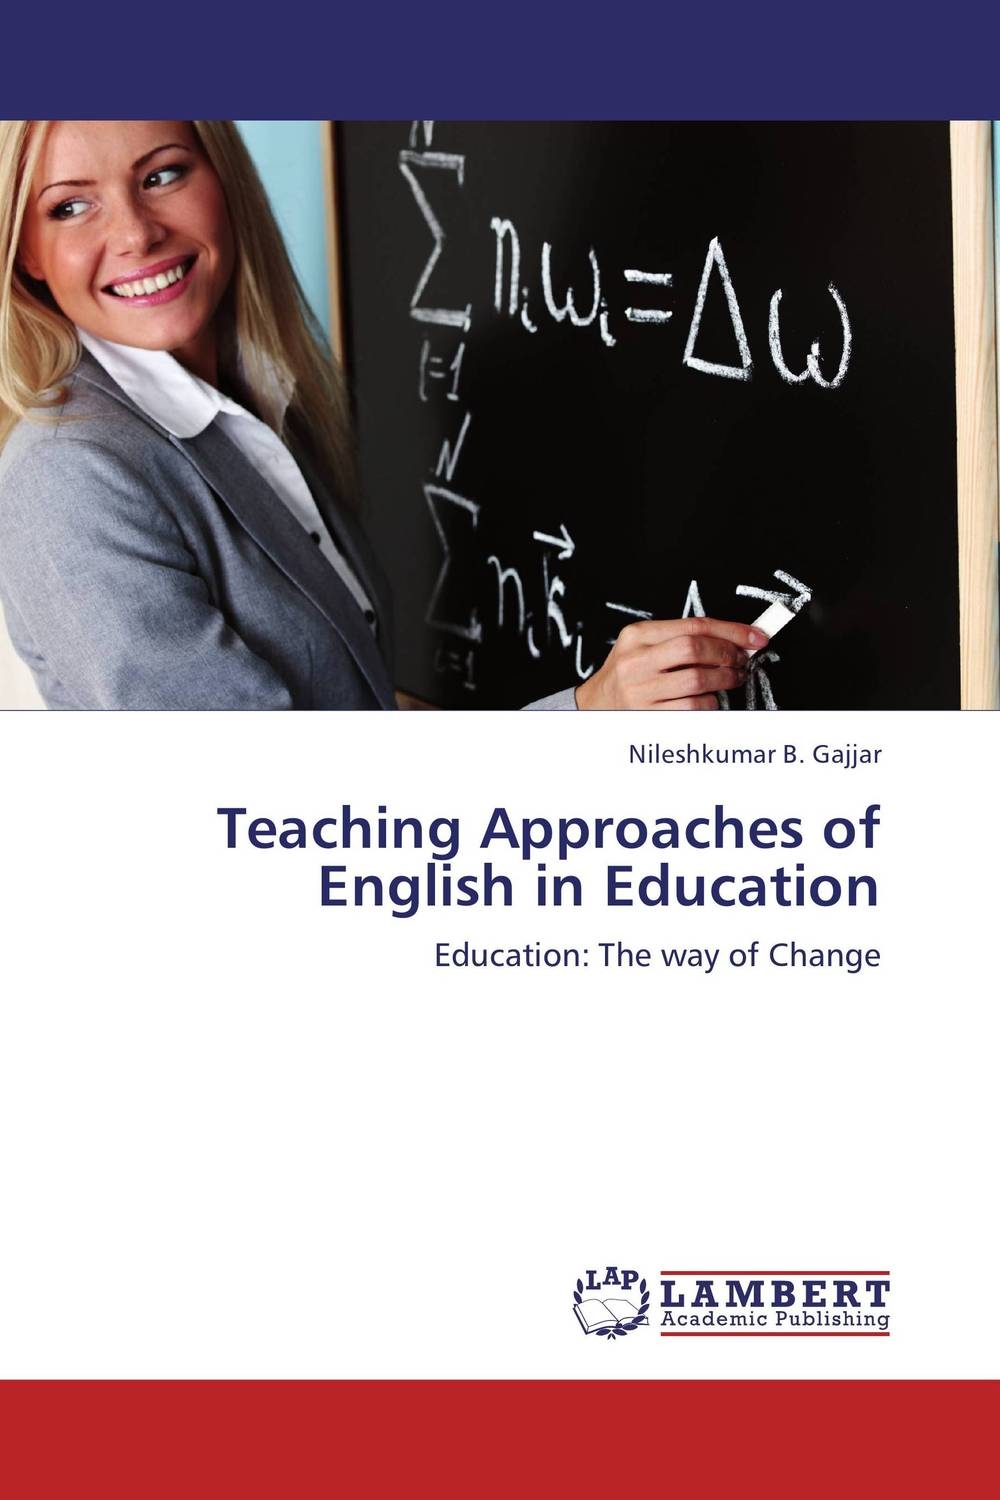 Teaching Approaches of English in Education